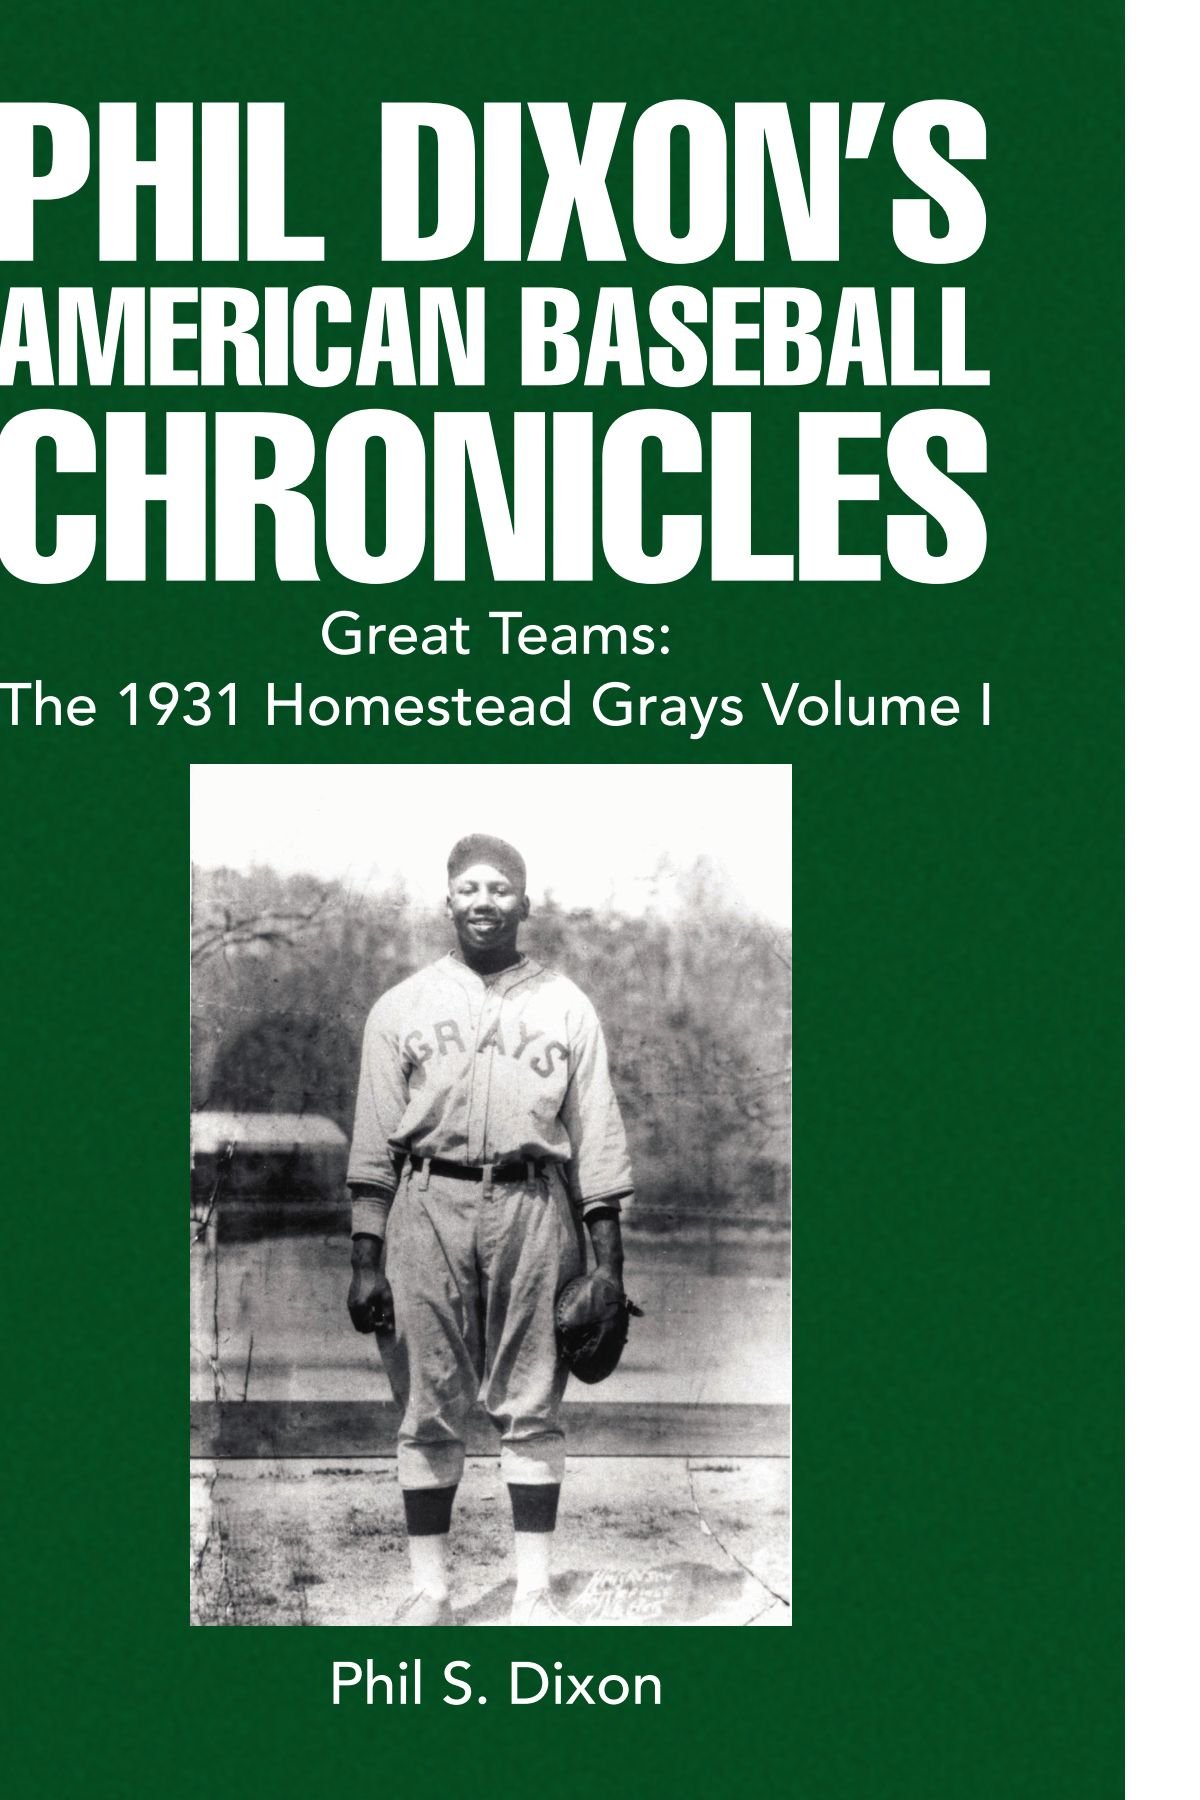 Read Online Phil Dixon's American Baseball Chronicles Great Teams: The 1931 Homestead Grays Volume I pdf epub